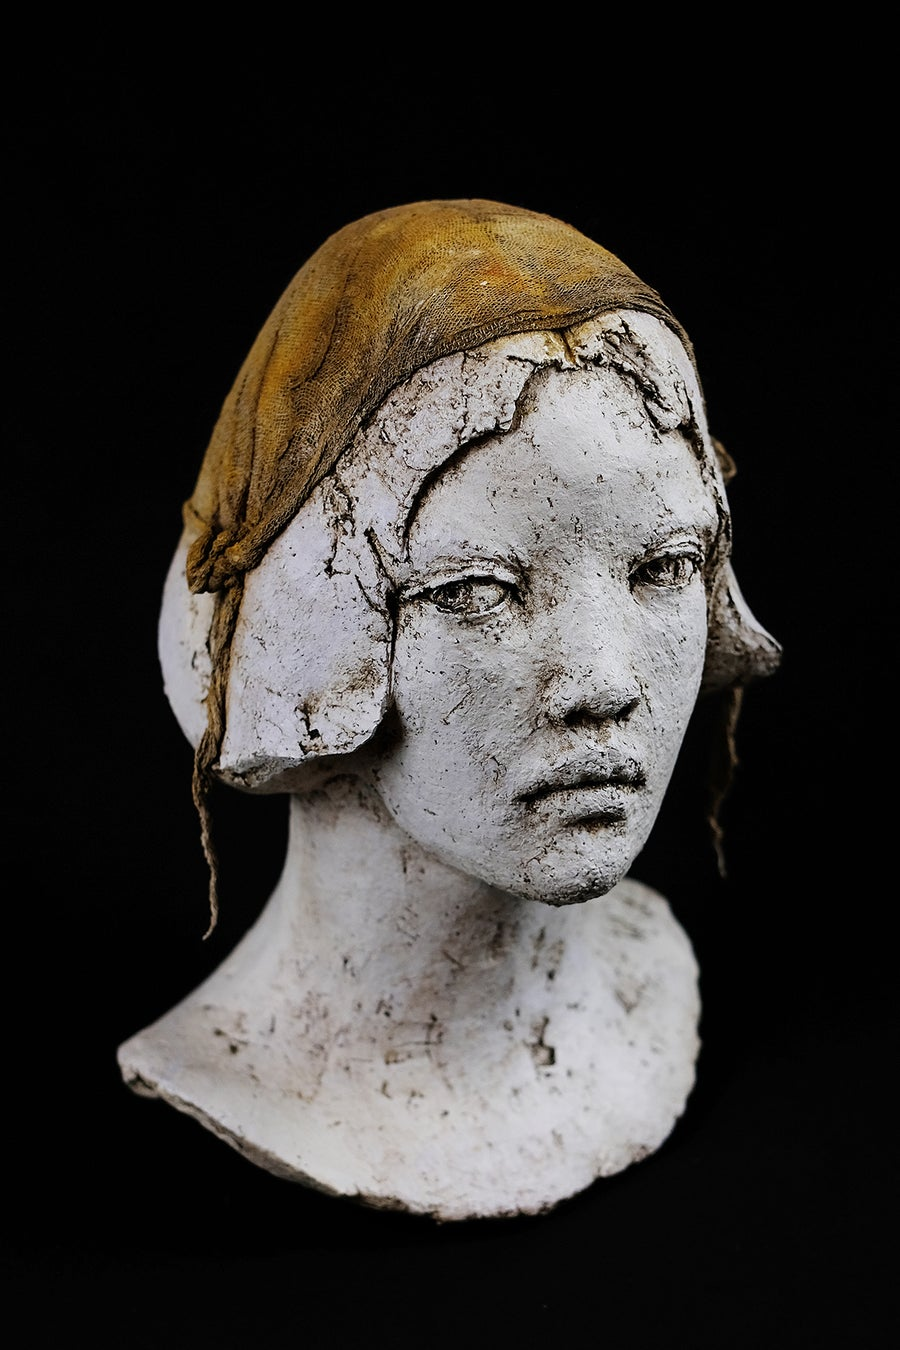 Image of ELIZABETH DUPIN - SJOSREDT 'GOREE' - UNIQUE CERAMIC SCULPTURE